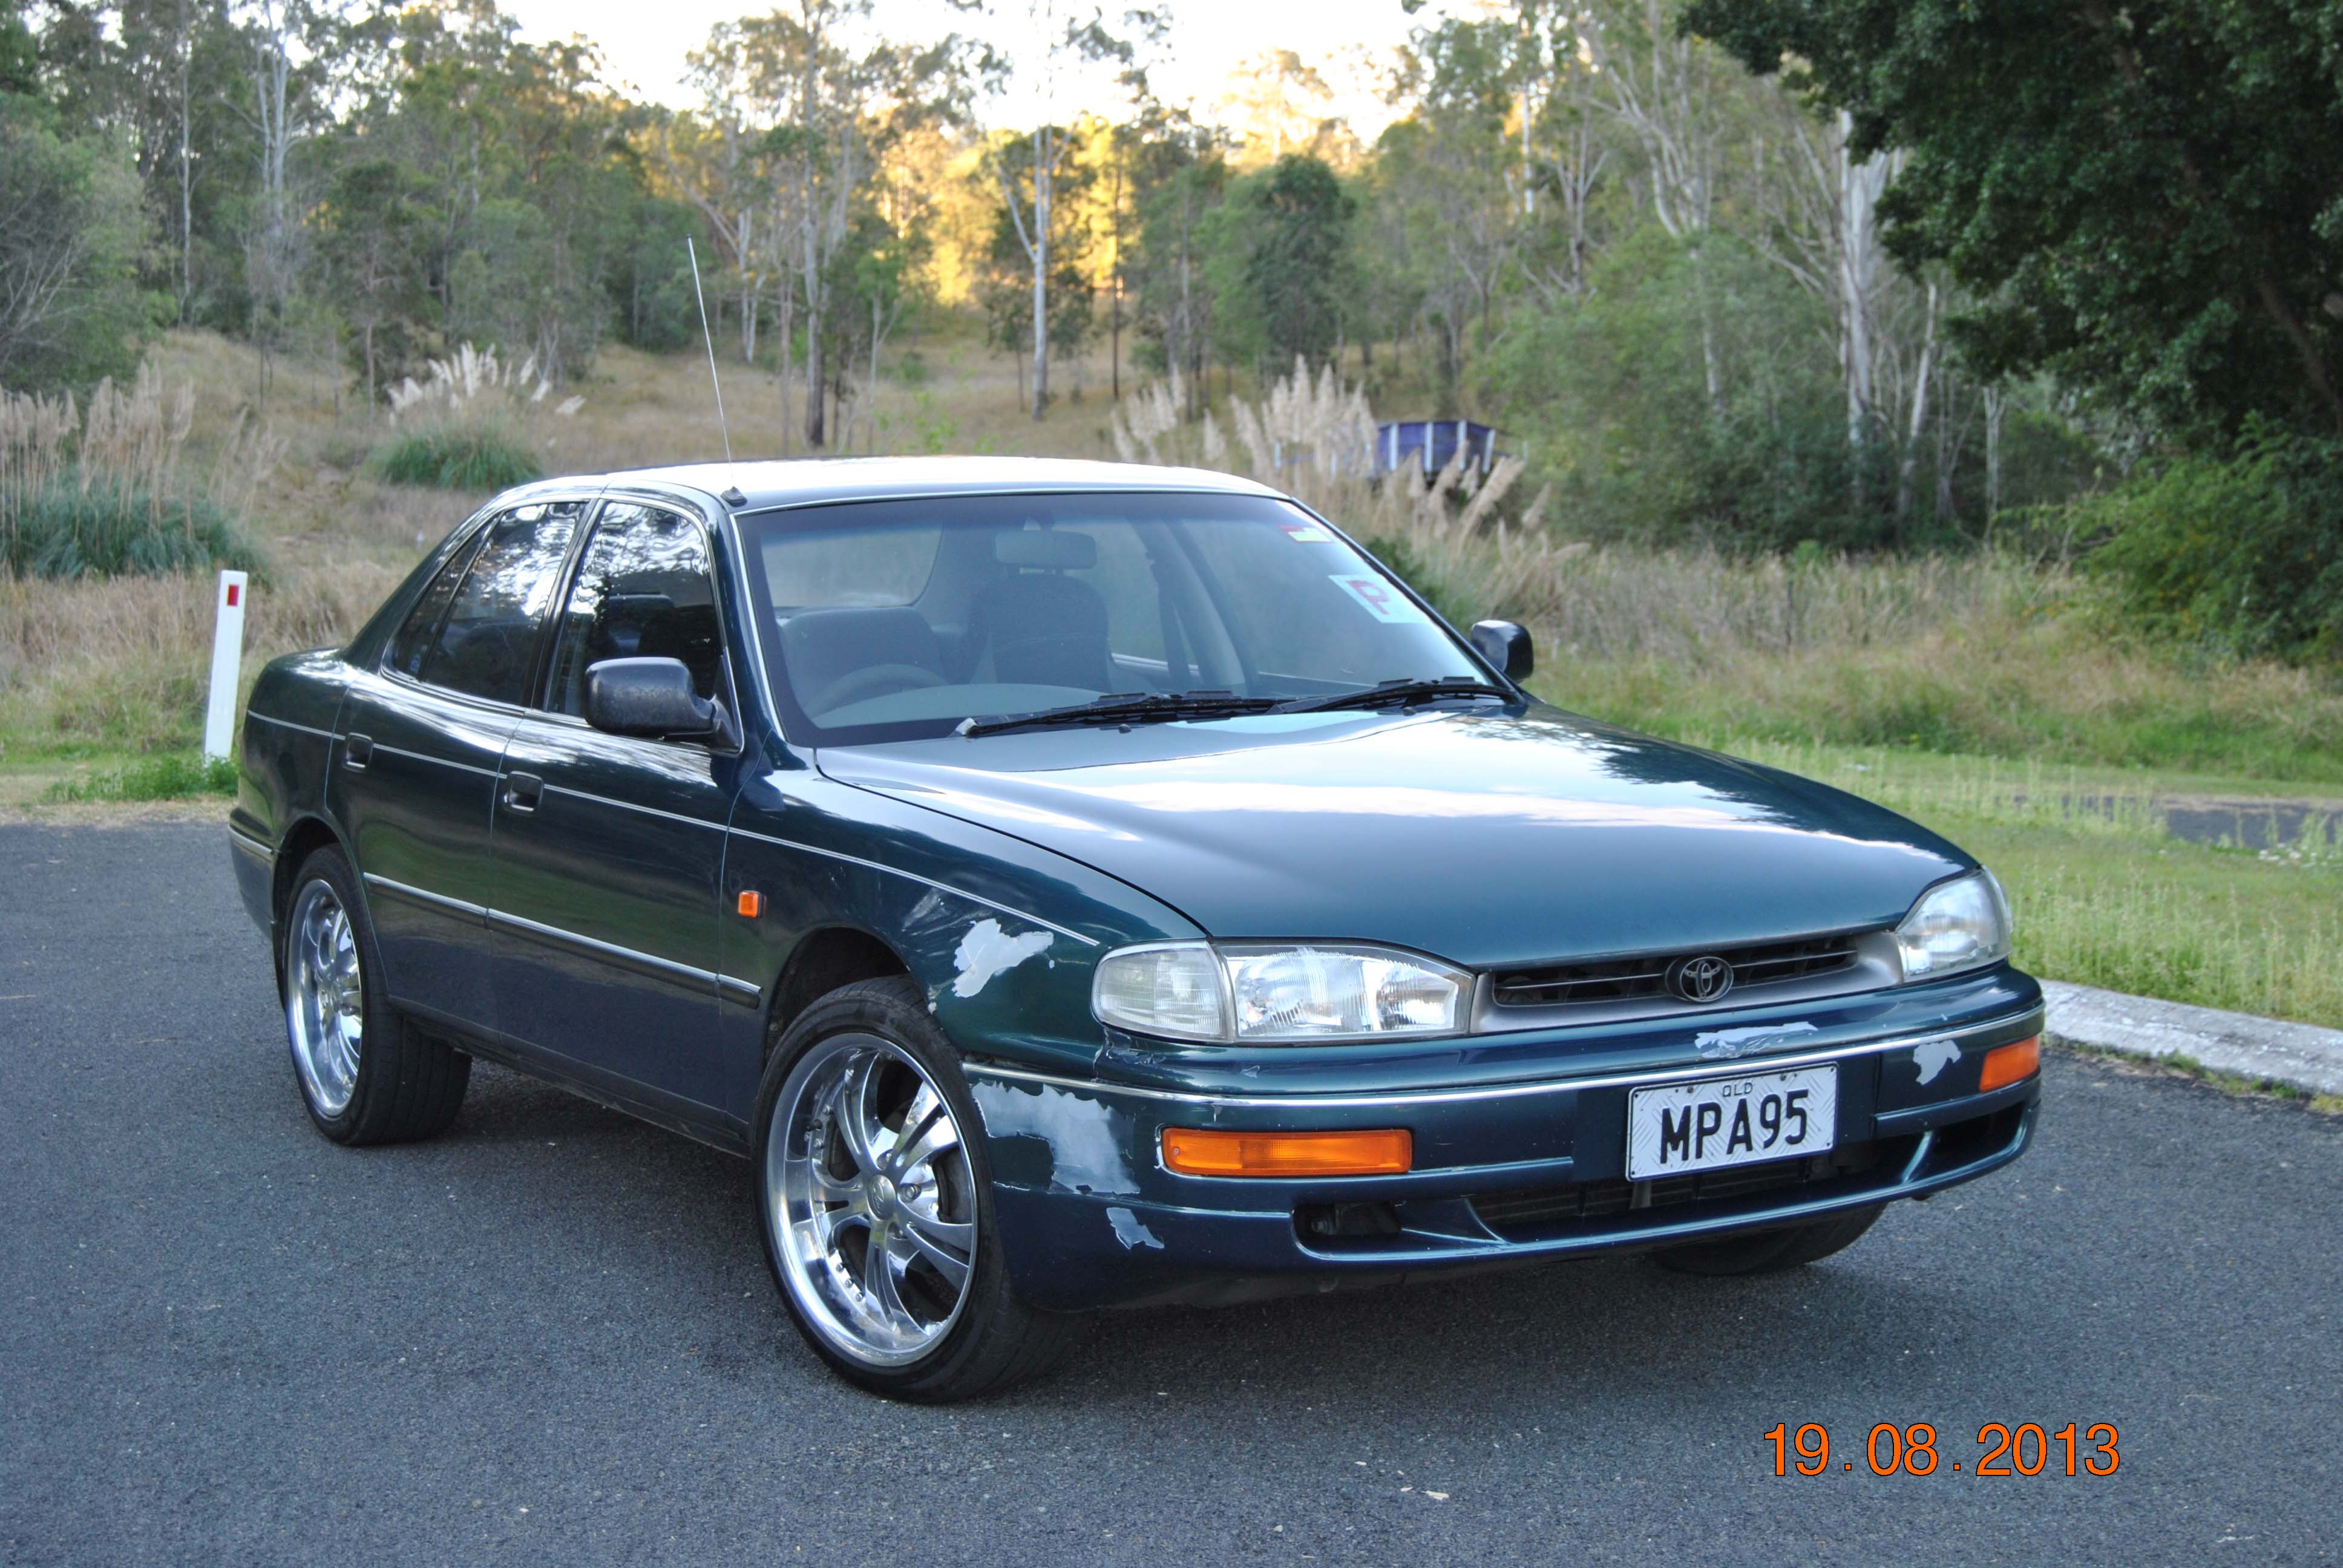 1996 toyota camry csi sdv10 car sales qld brisbane south. Black Bedroom Furniture Sets. Home Design Ideas